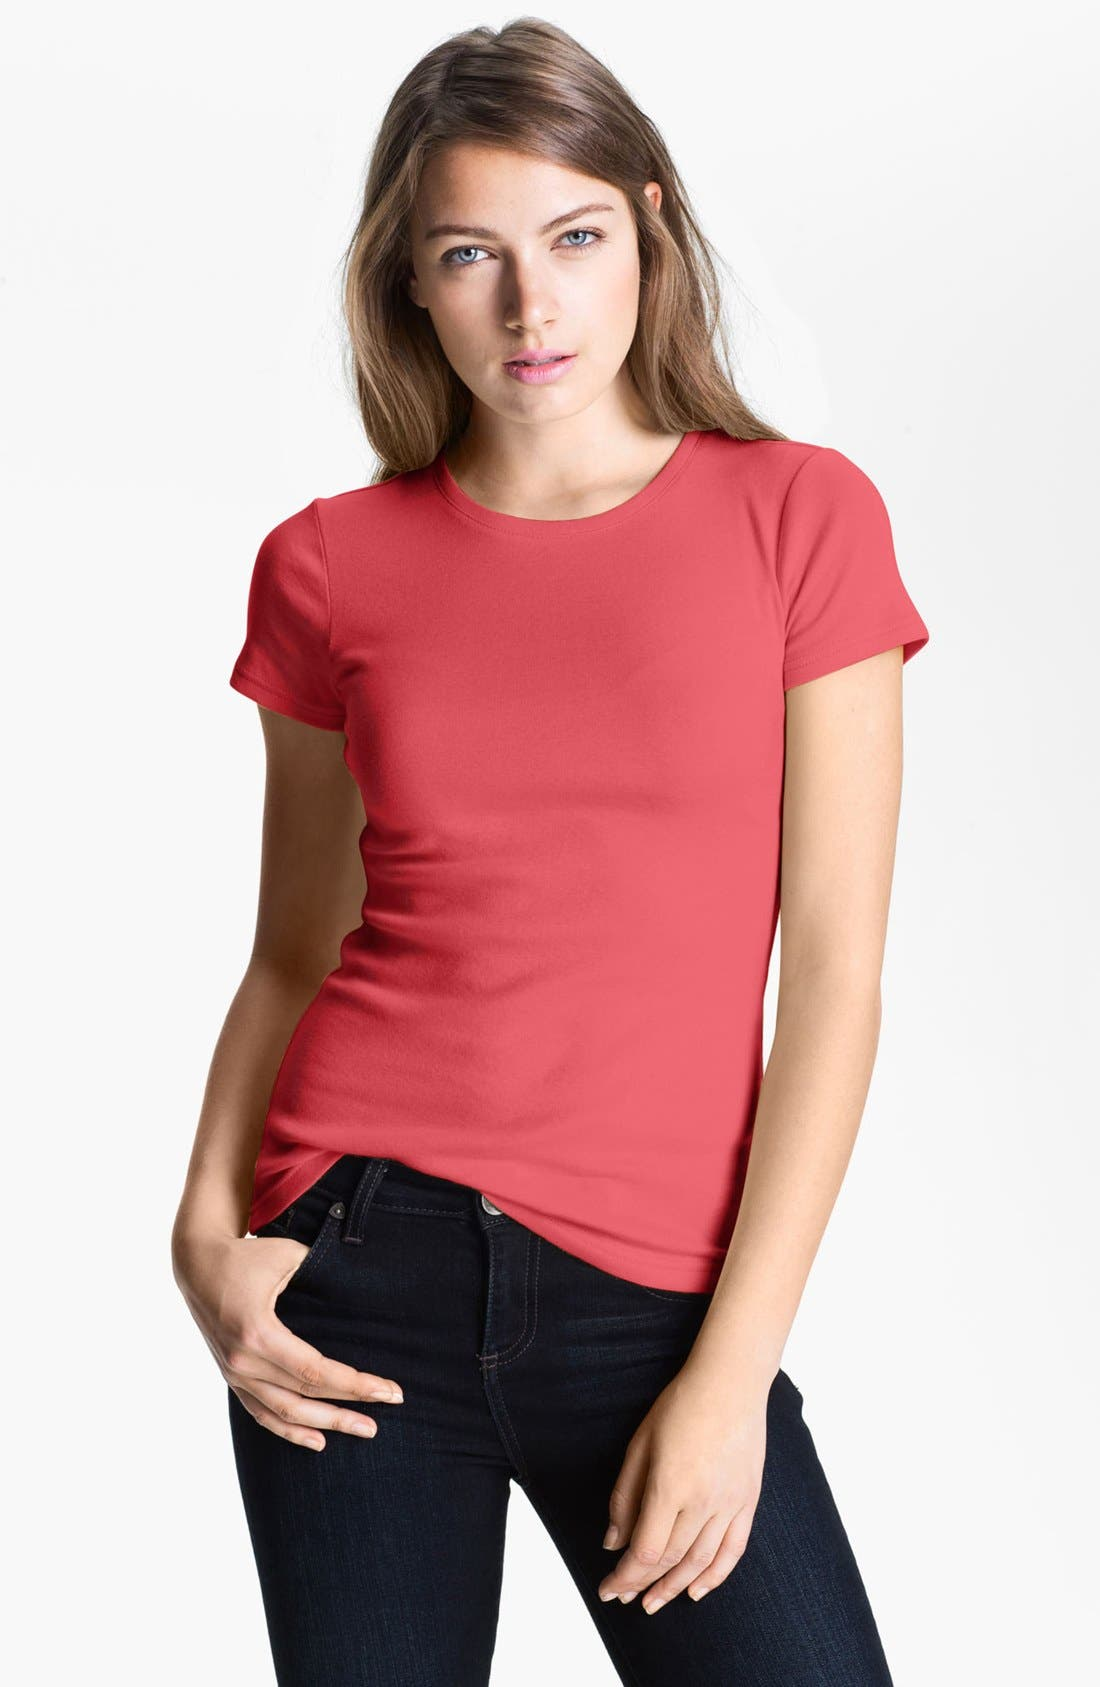 Alternate Image 1 Selected - Caslon® Short Sleeve Crewneck Tee (Petite)